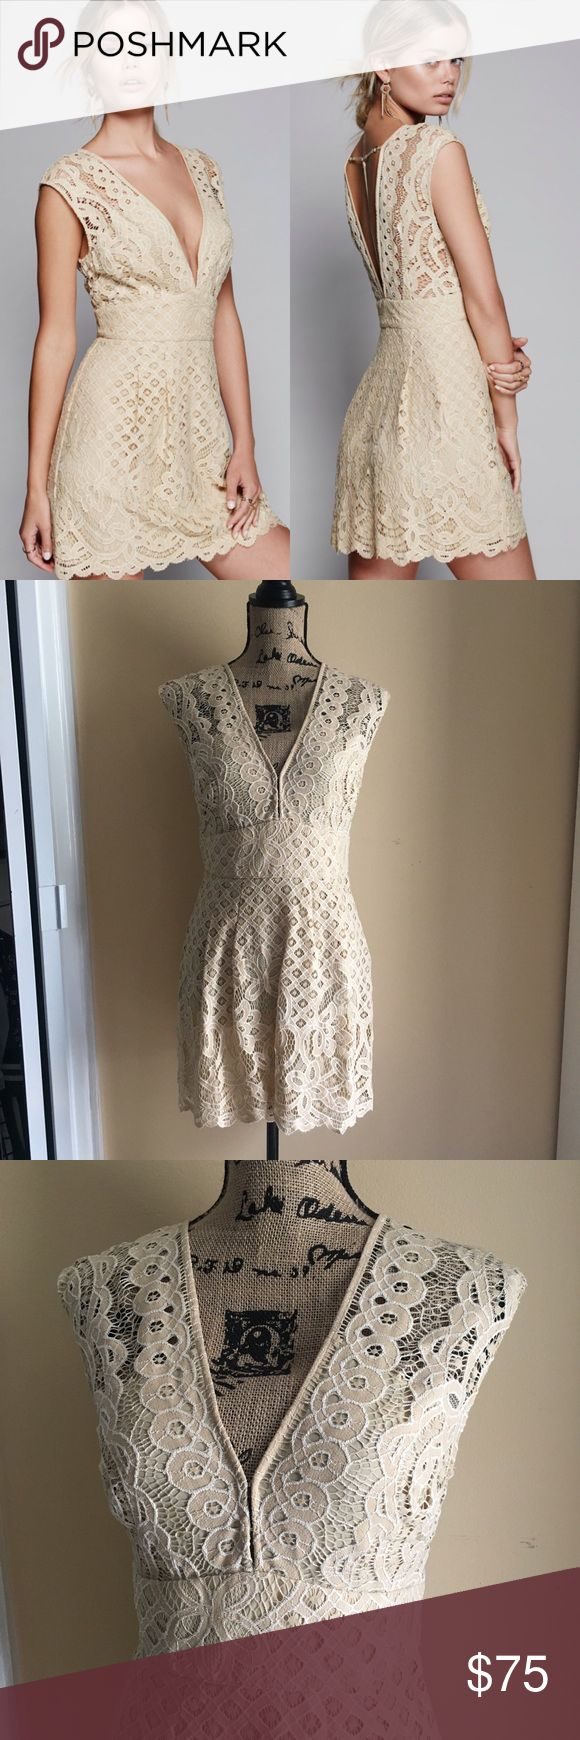 """Free People One Million Love Lace Baby Doll Dress Lovely lacey dress featuring a front and back plunging V with a cute back strappy detail. Femme fit-and-flare shape. Hidden side zipper closure. Lined. Brand new without tags   40% Nylon 60% Cotton Hand Wash Cold Import Measurements for size 4 Bust: 18.5"""" = 46.99 cm Waist: 28"""" = 71.12 cm Length: 33"""" = 83.82 cm Free People Dresses Mini"""